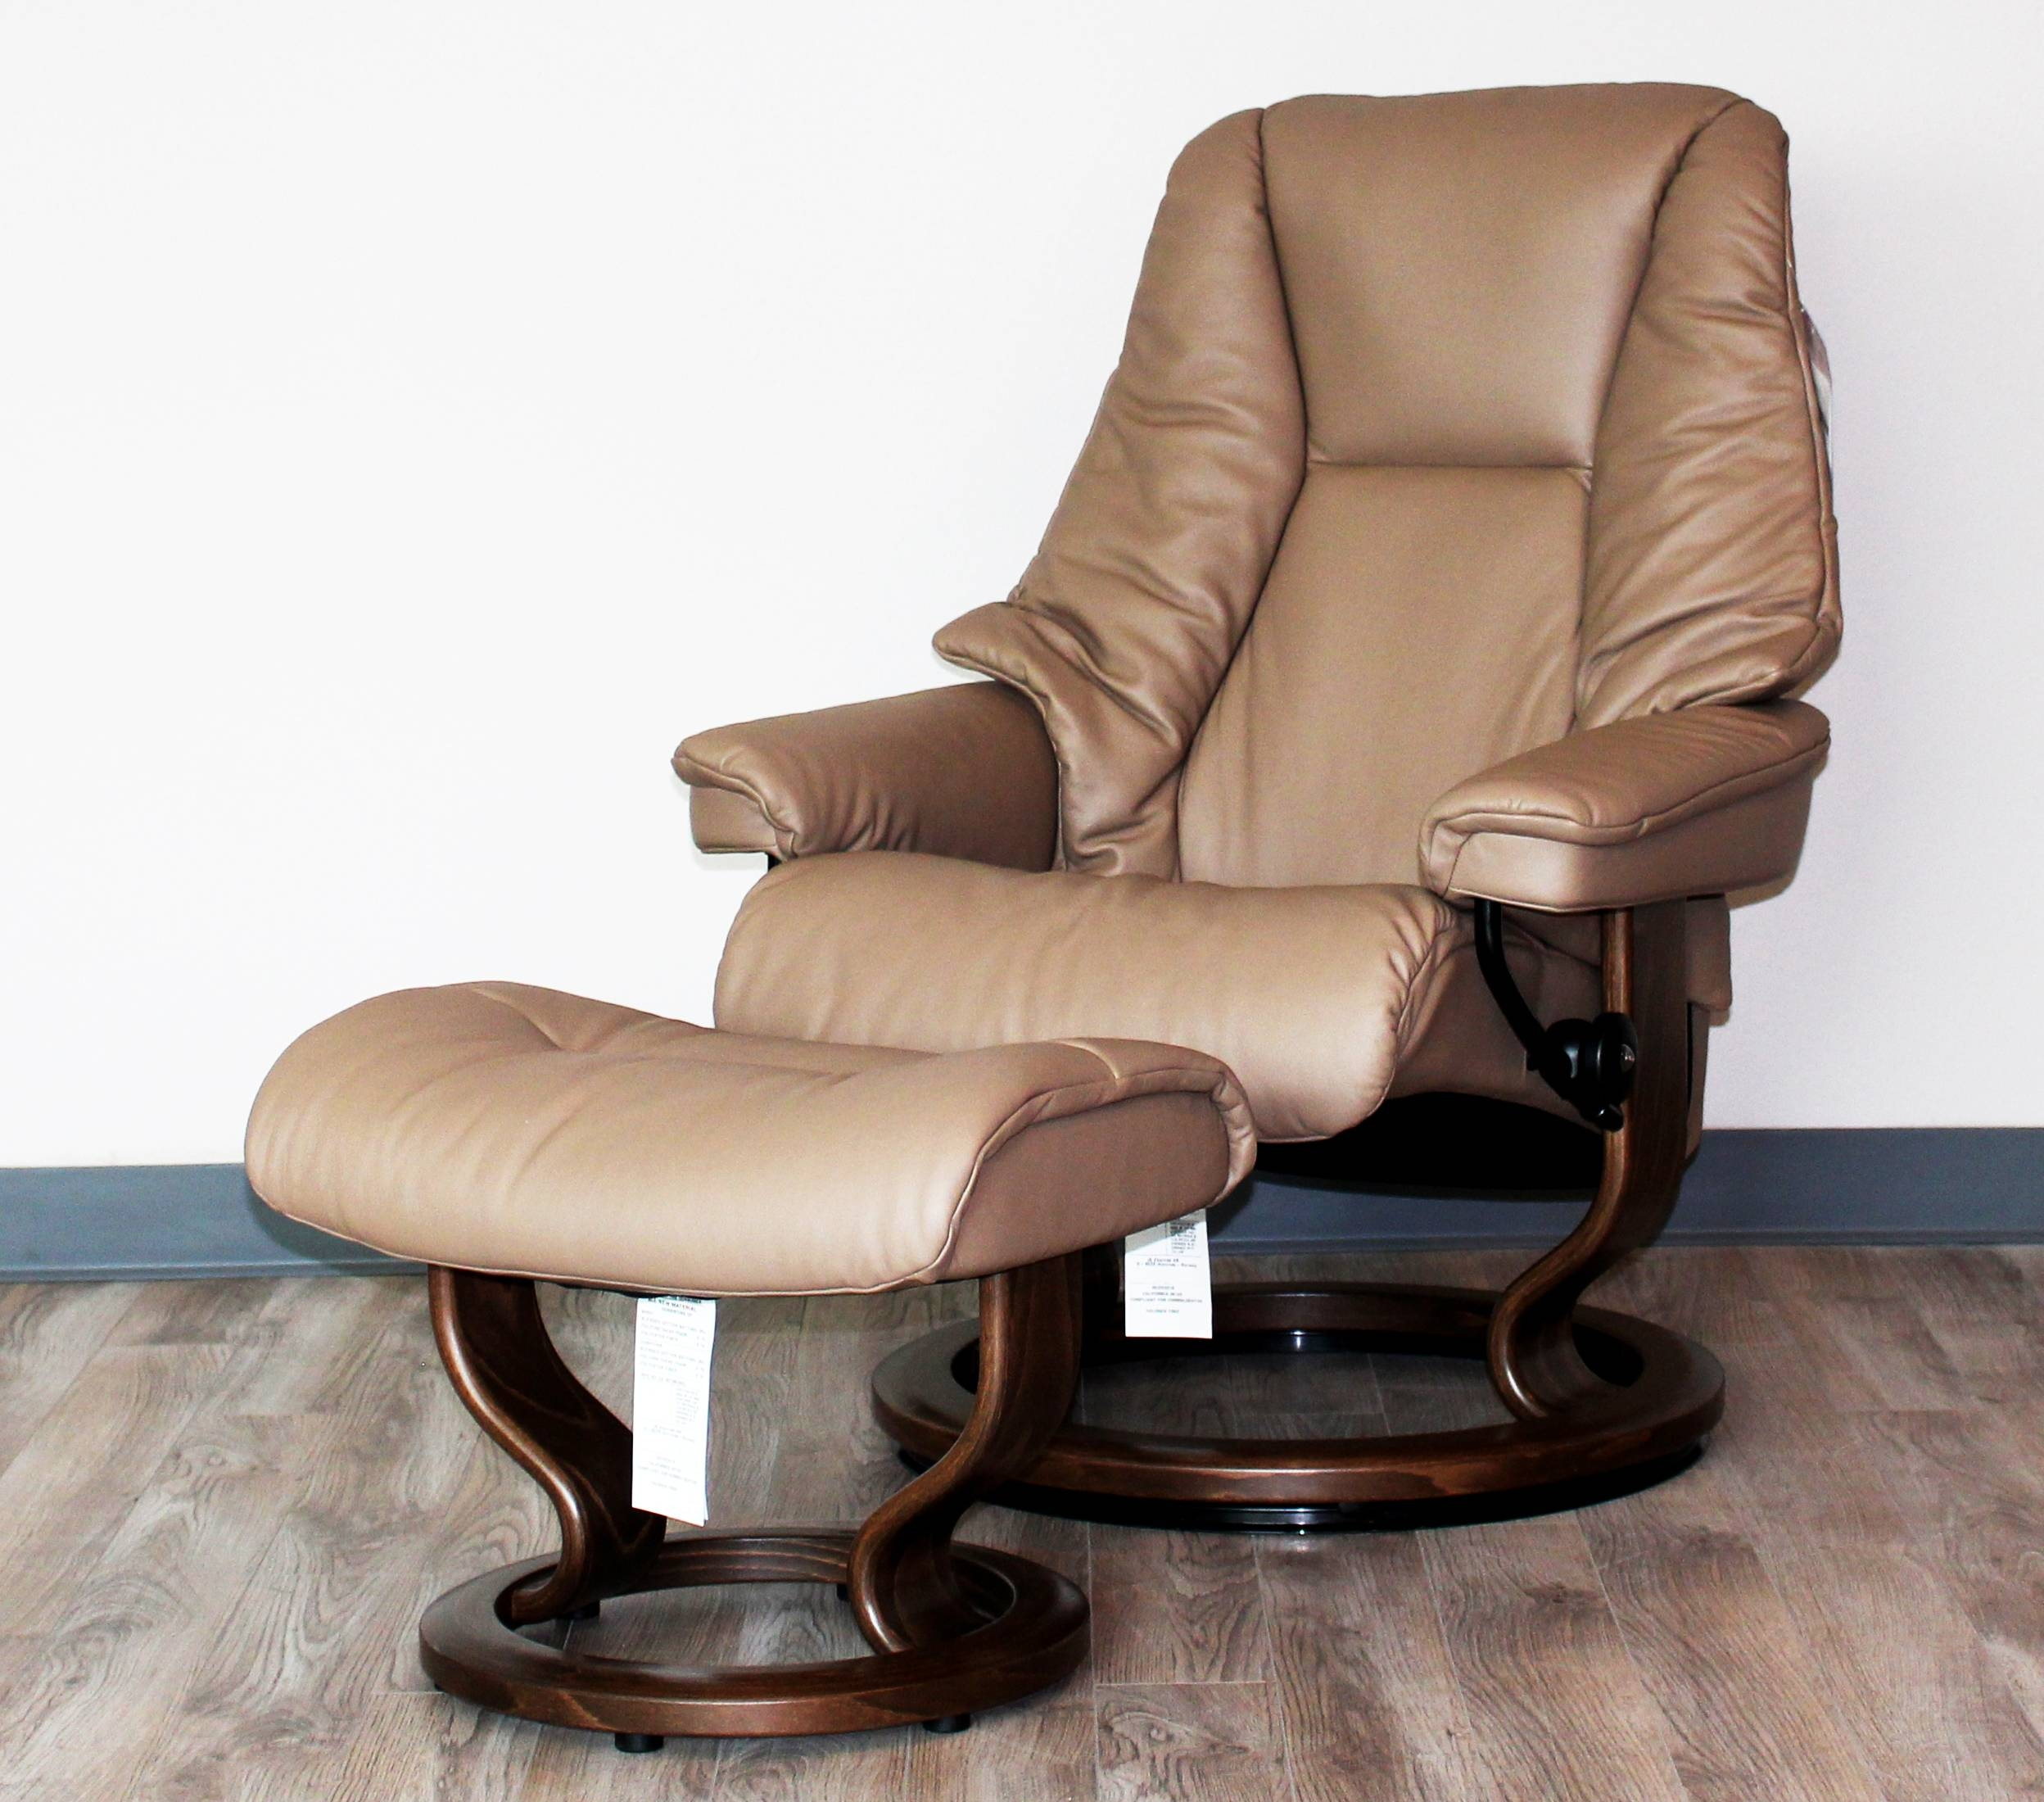 Fullsize Of Ergonomic Chair With Ottoman